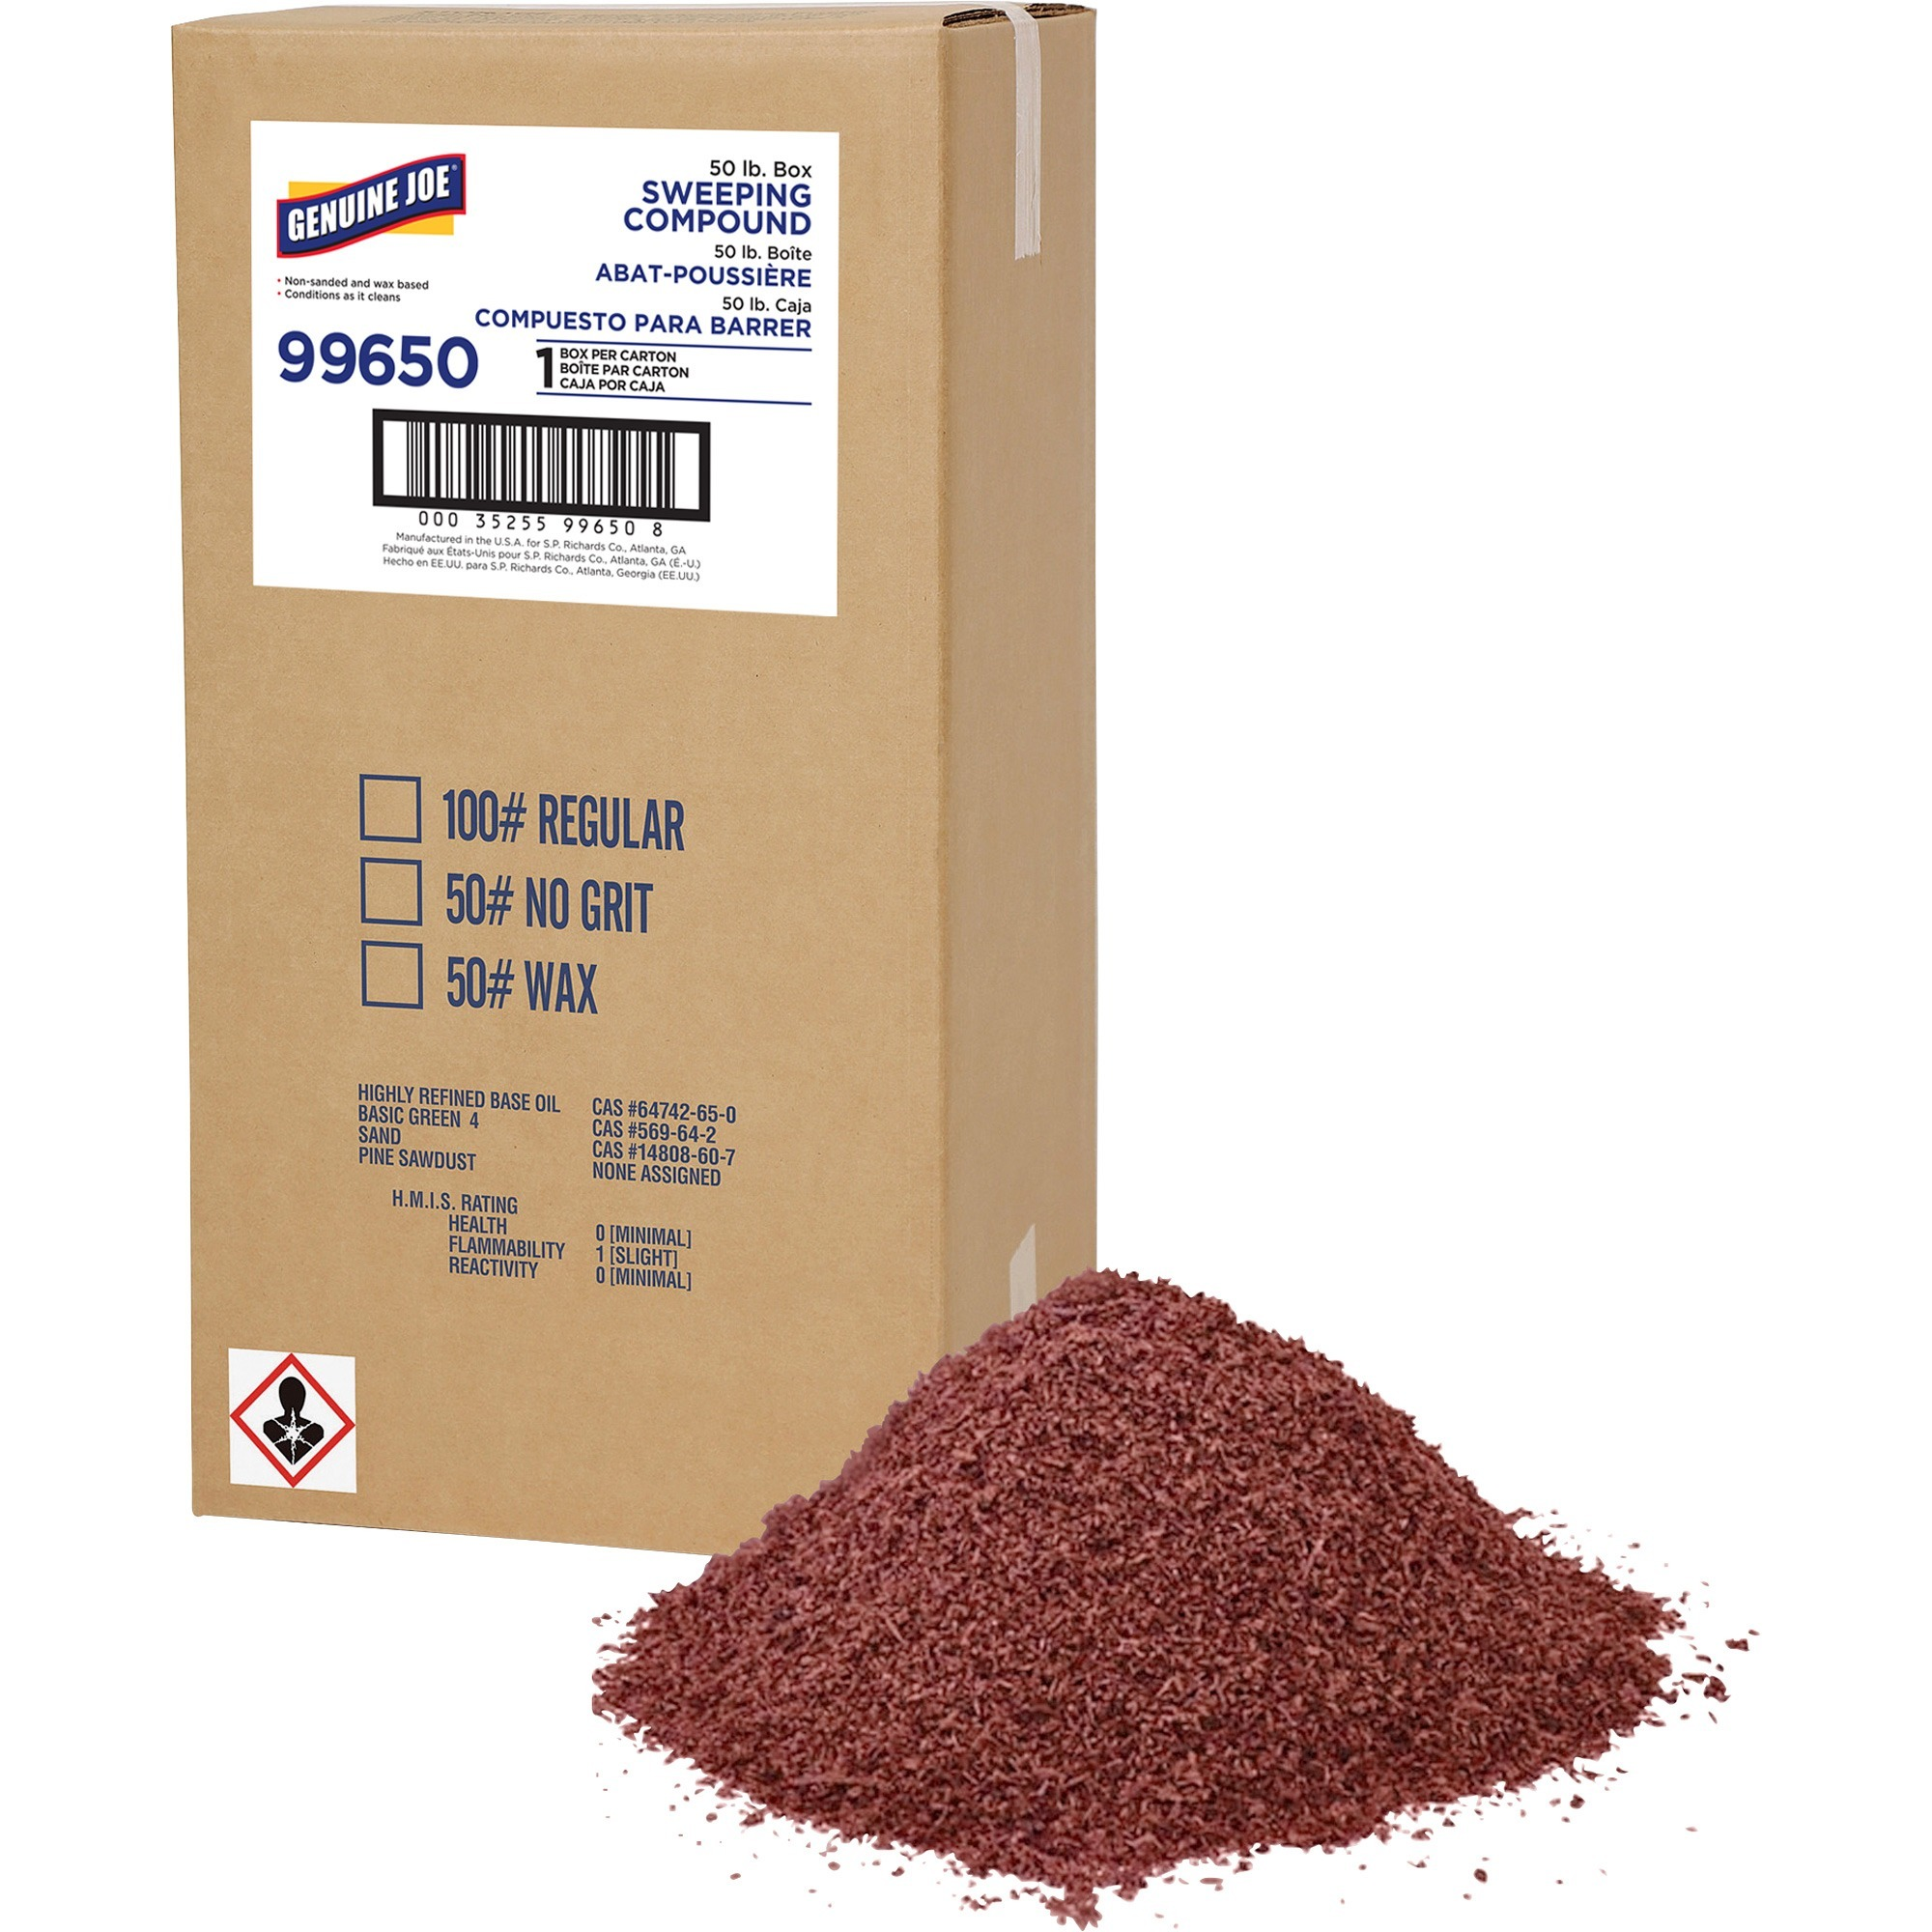 Genuine Joe, GJO99650, Wax Based Sweeping Compound, 1 Box, Red